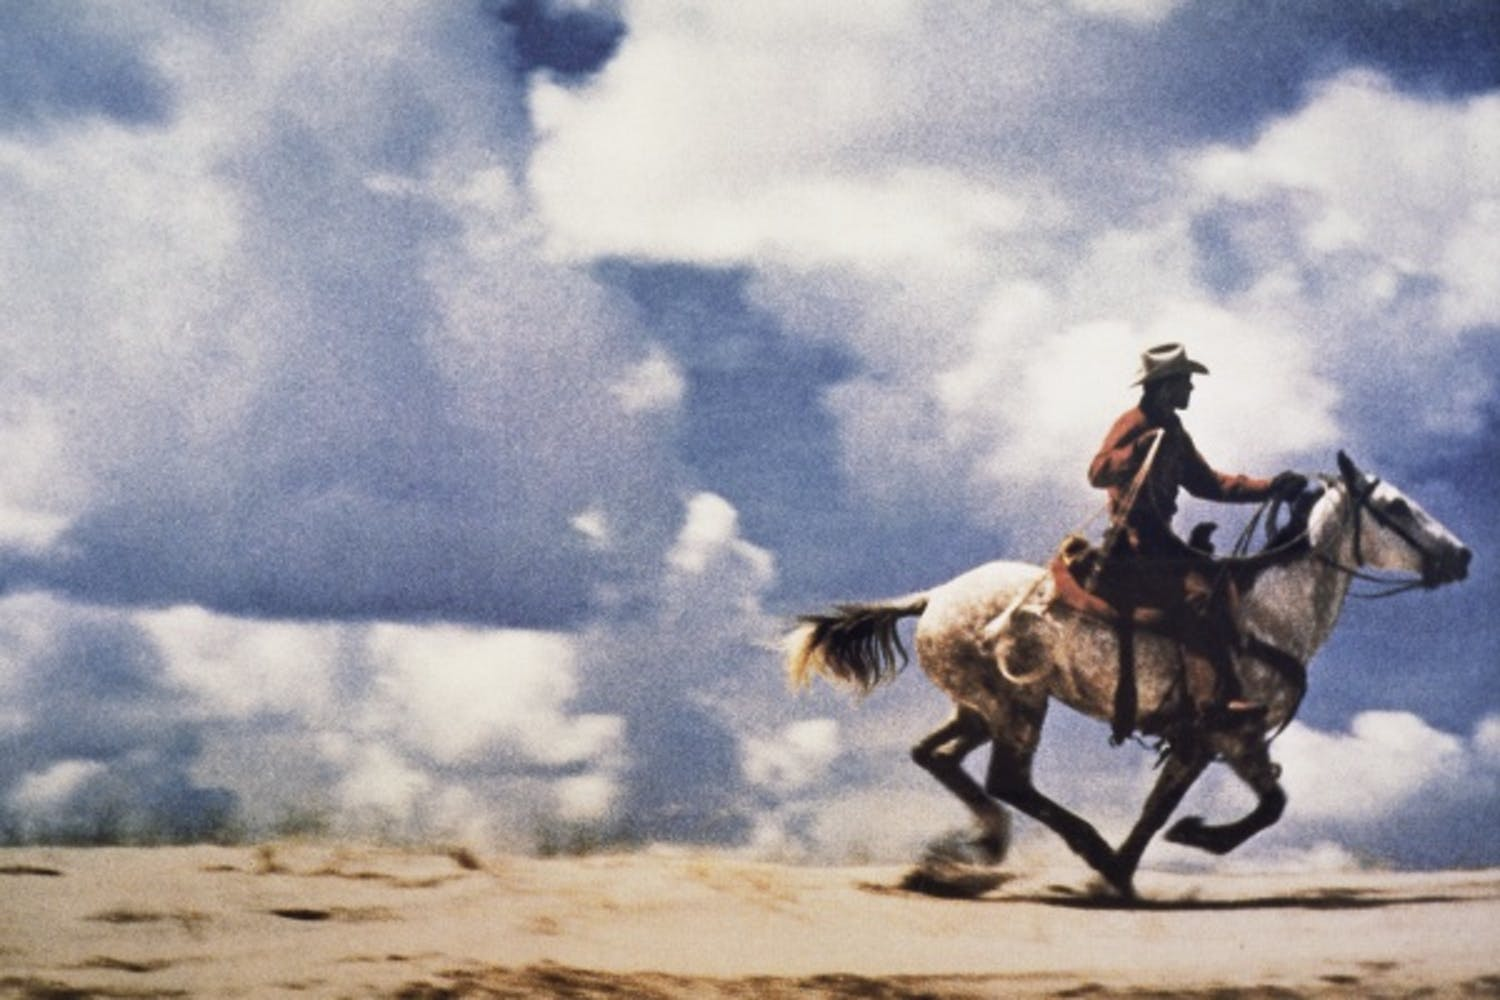 Richard Prince, Untitled (cowboy), 1989